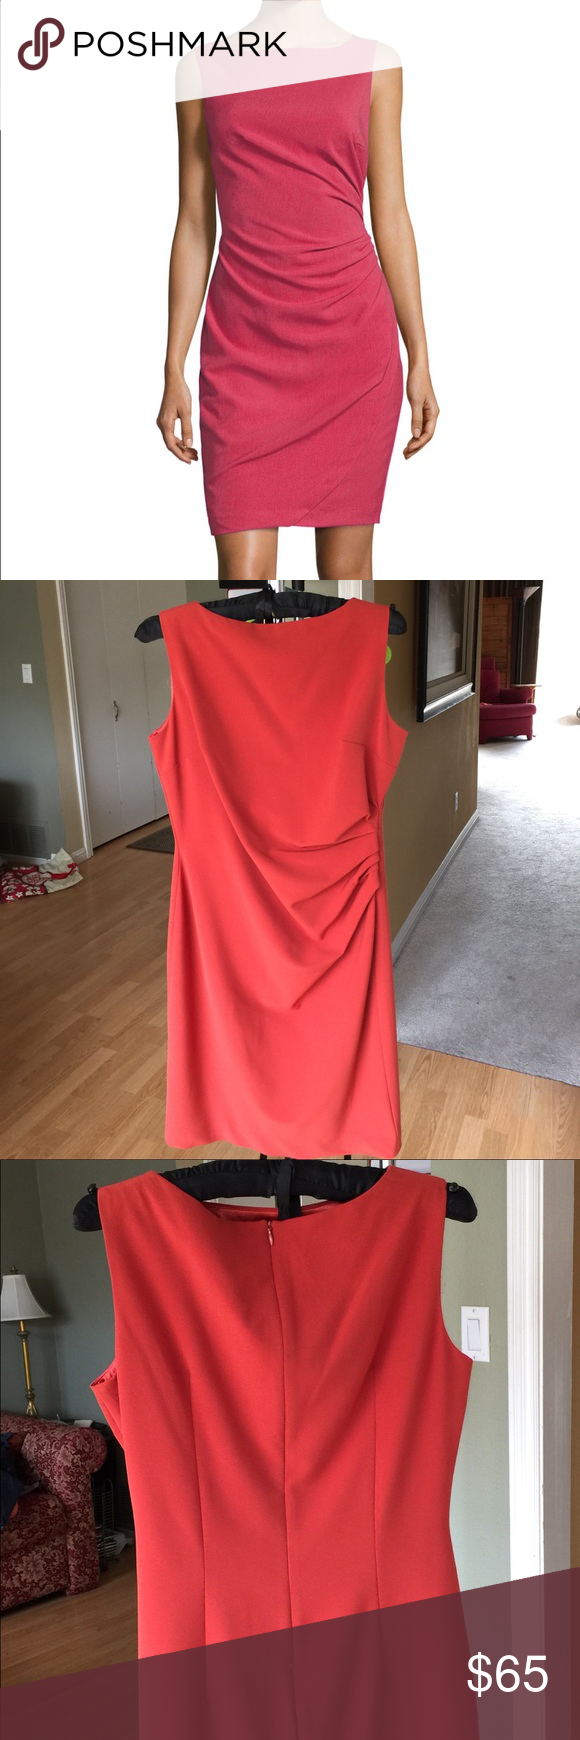 Ava & Aiden Side Pleated Sheath Dress Be the lady in red!! Gorgeous, sexy yet classy dress! Fully lined, side pleating with a bit of a stretch for a figure flattering fit.  18 inches across bust laying flat, 36 inches long from shoulder to bottom. Excellent condition Ava & Aiden Dresses